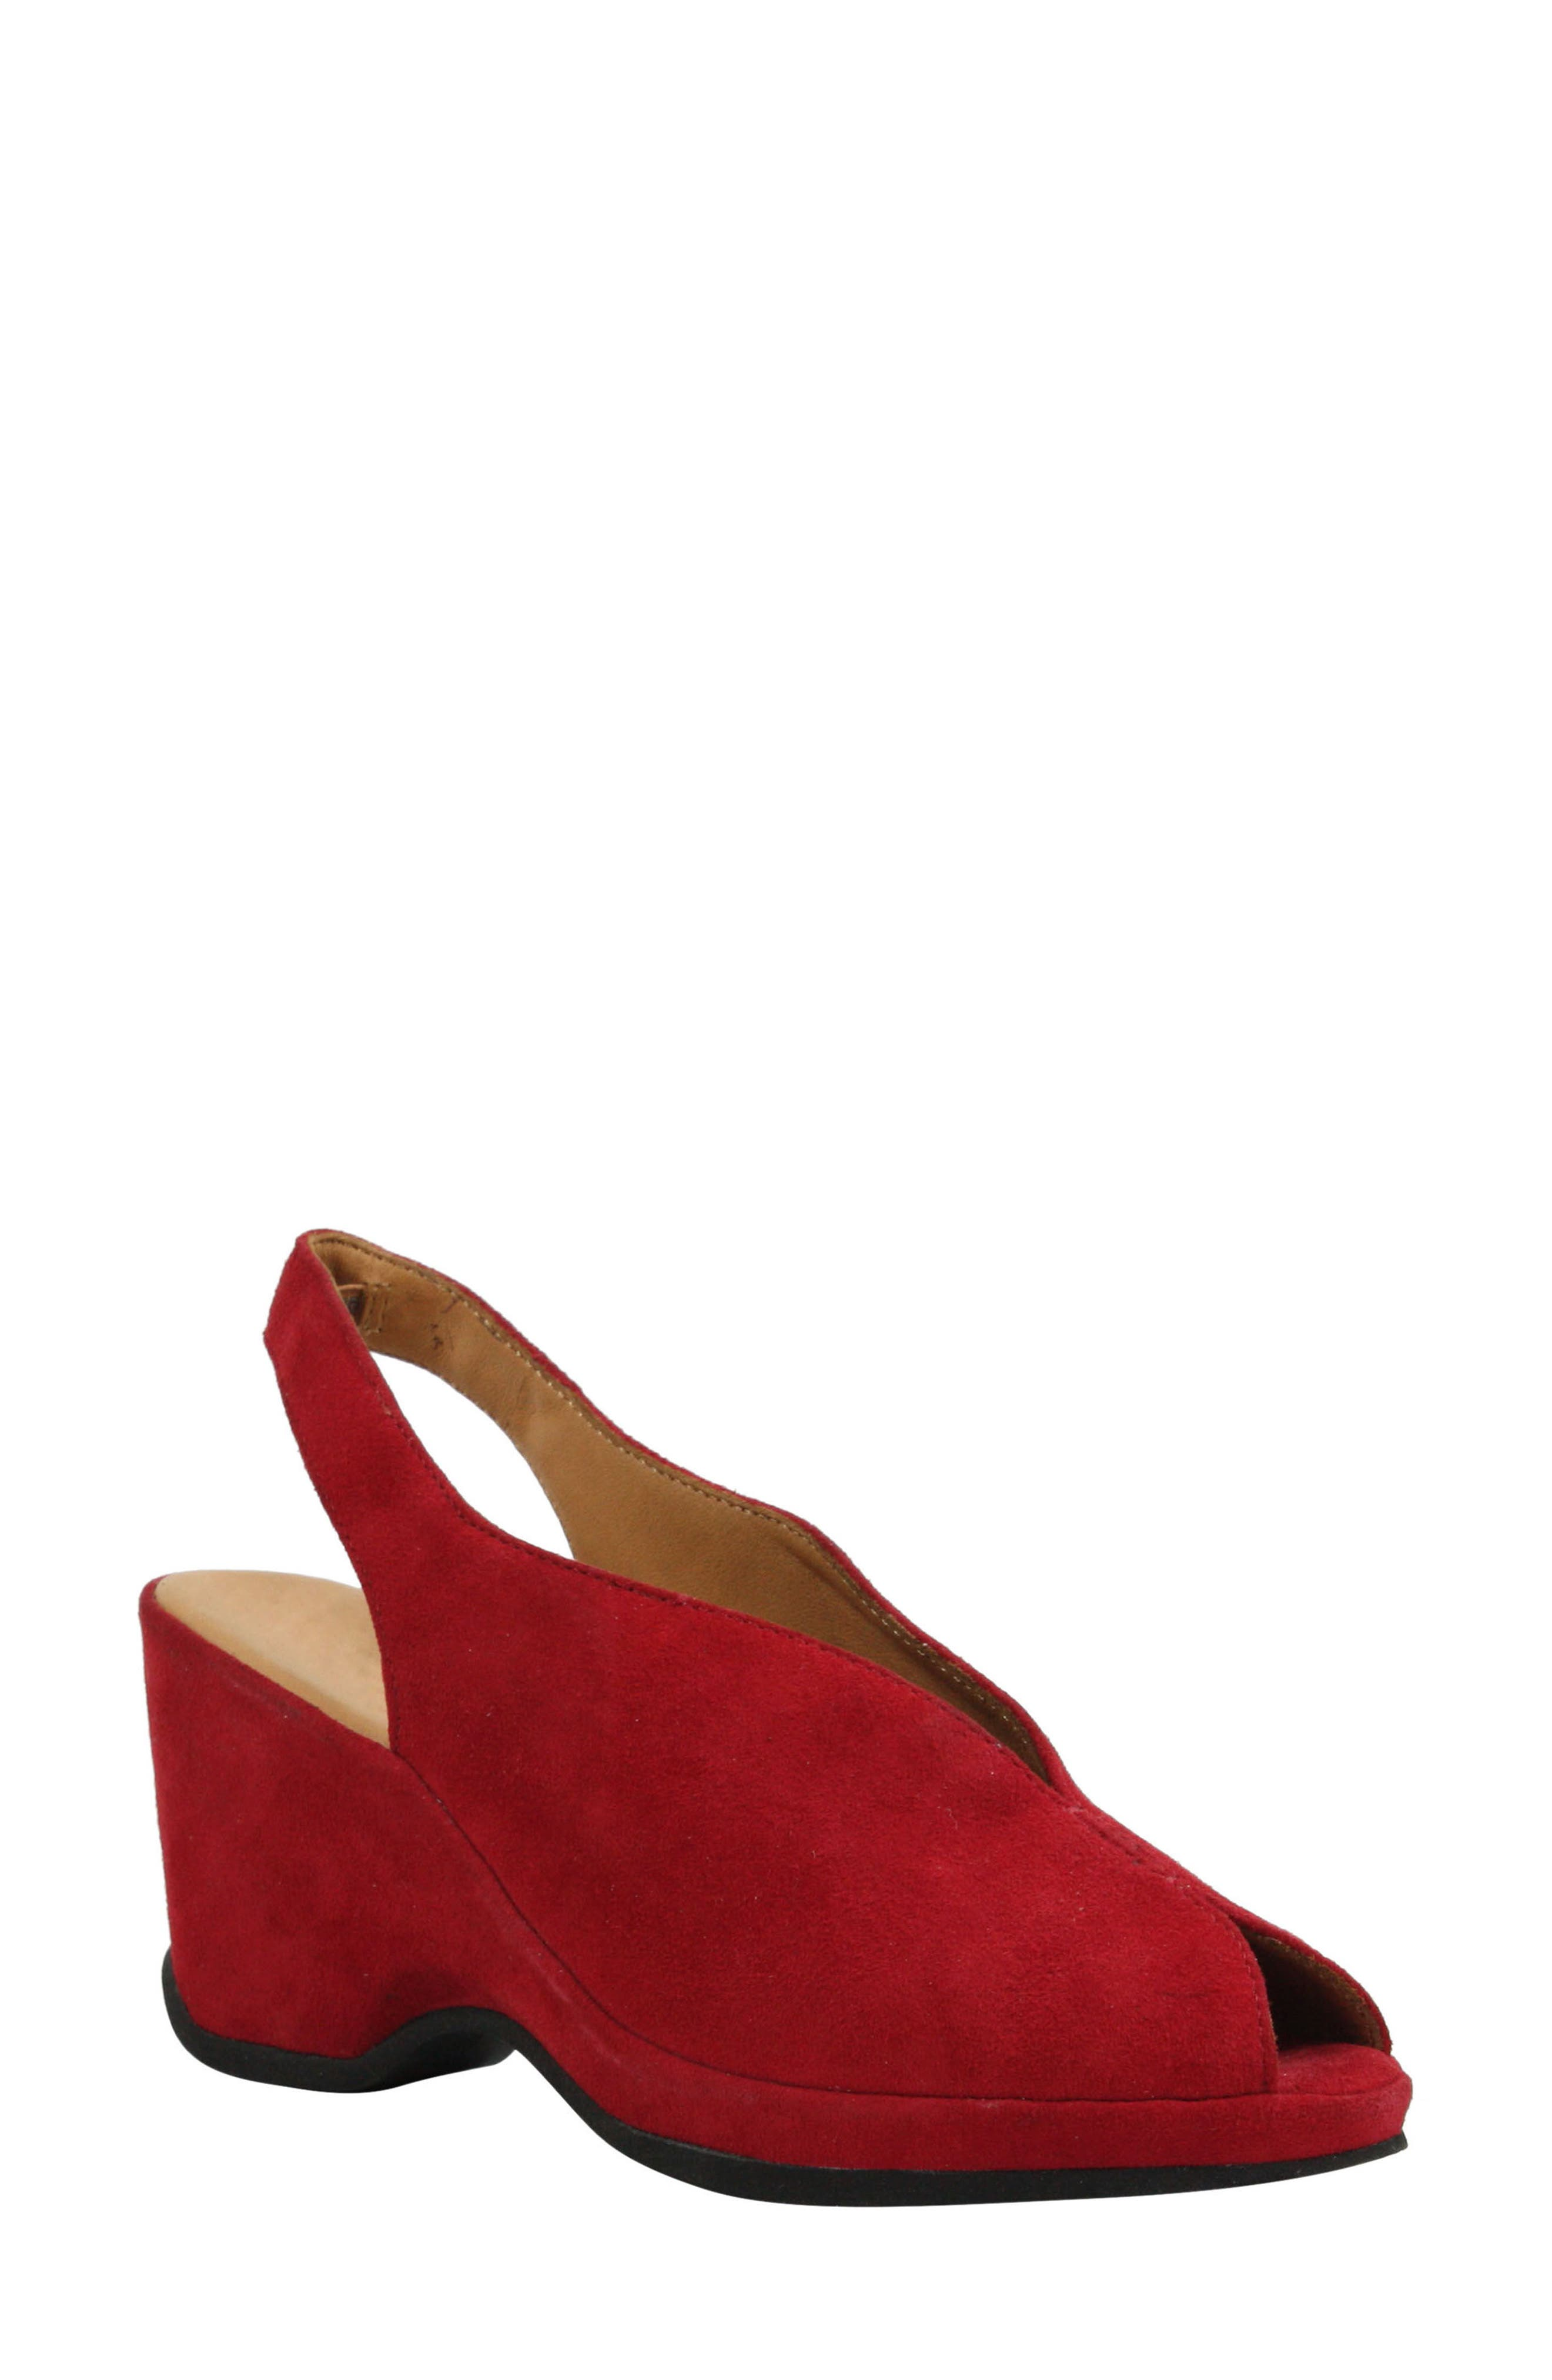 Odetta Slingback Wedge,                             Main thumbnail 1, color,                             Bright Red Suede